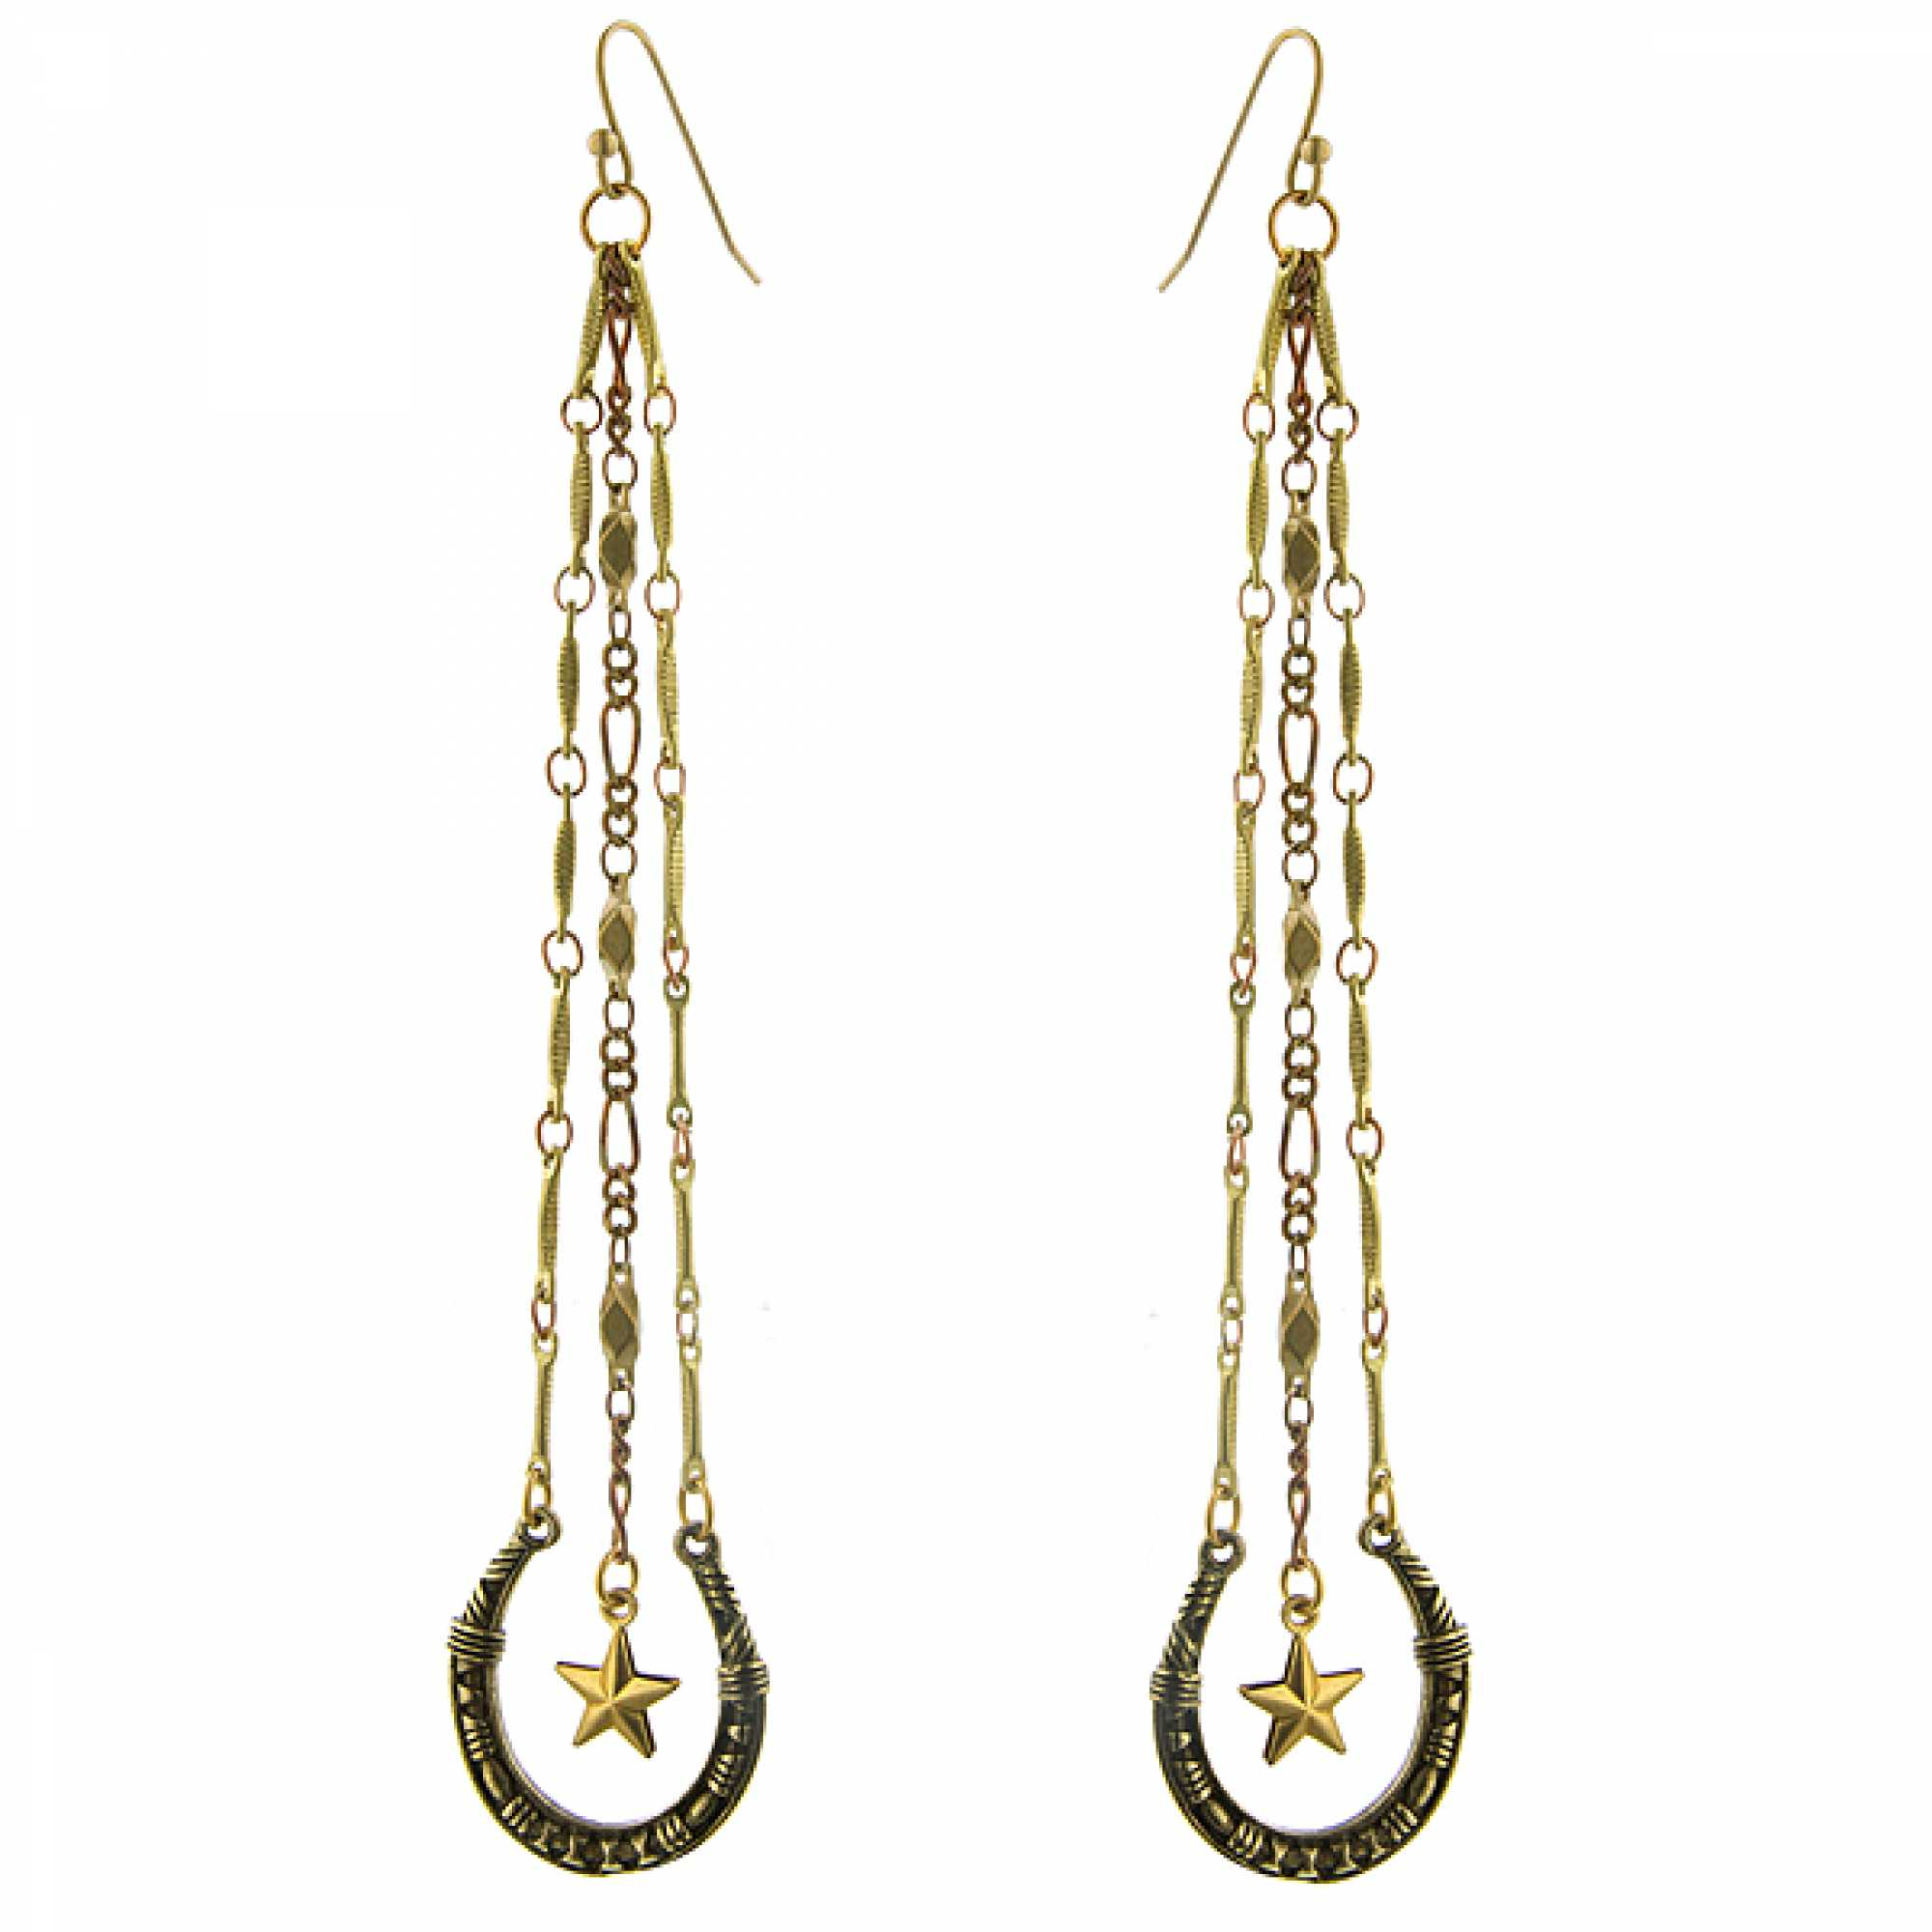 T.R.U. Lucky Horseshoe and Star Charm Linear Earrings